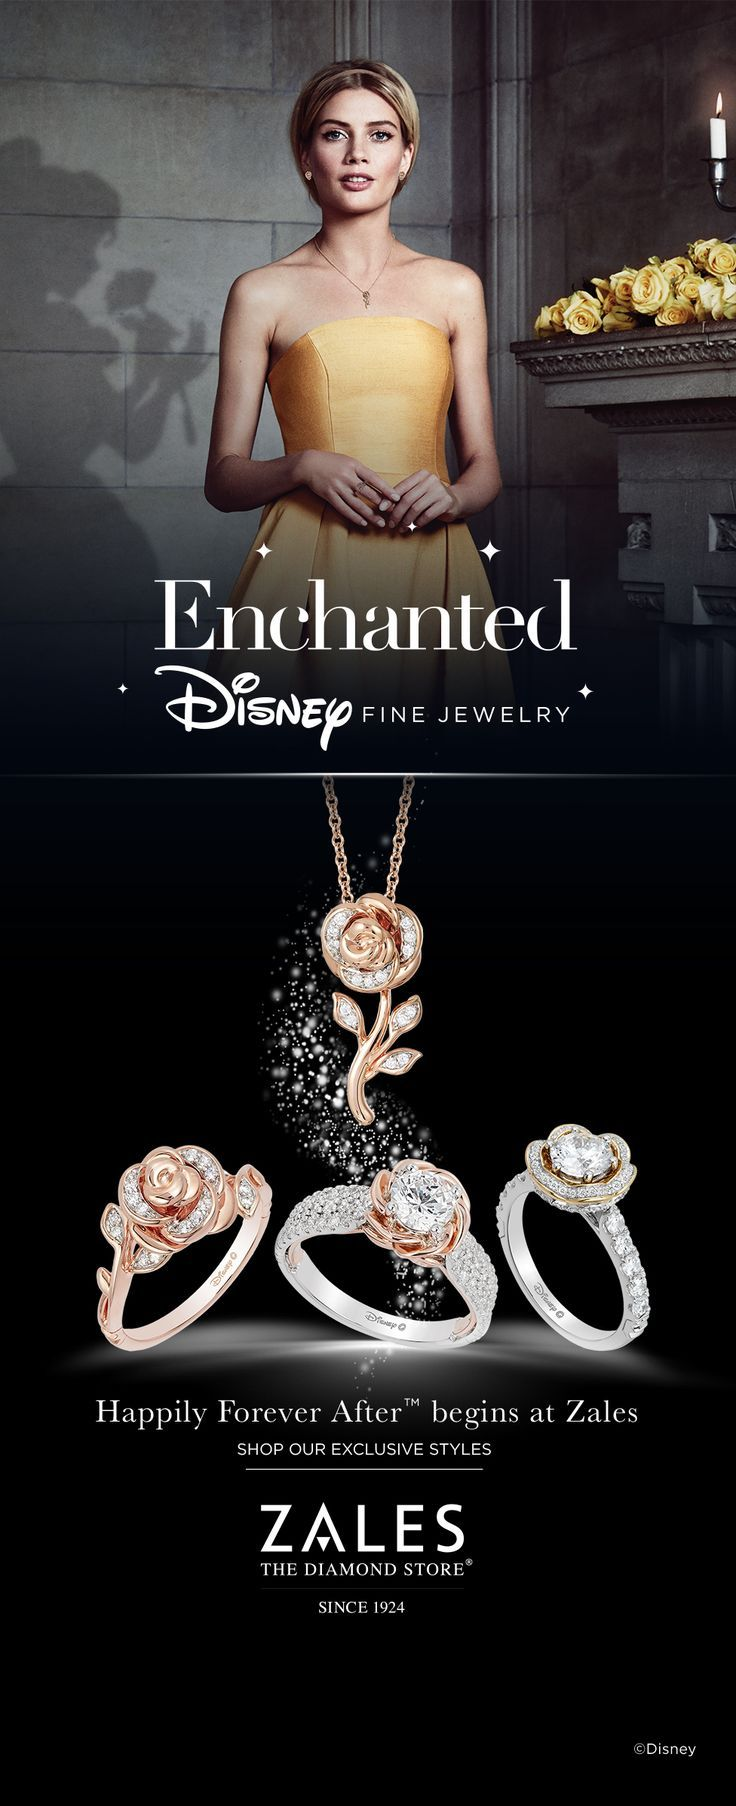 If You Believe In Romance Dreams And Happily Forever After You Will Fall In Love With Enchan Disney Fine Jewelry Disney Jewelry Enchanted Disney Fine Jewelry